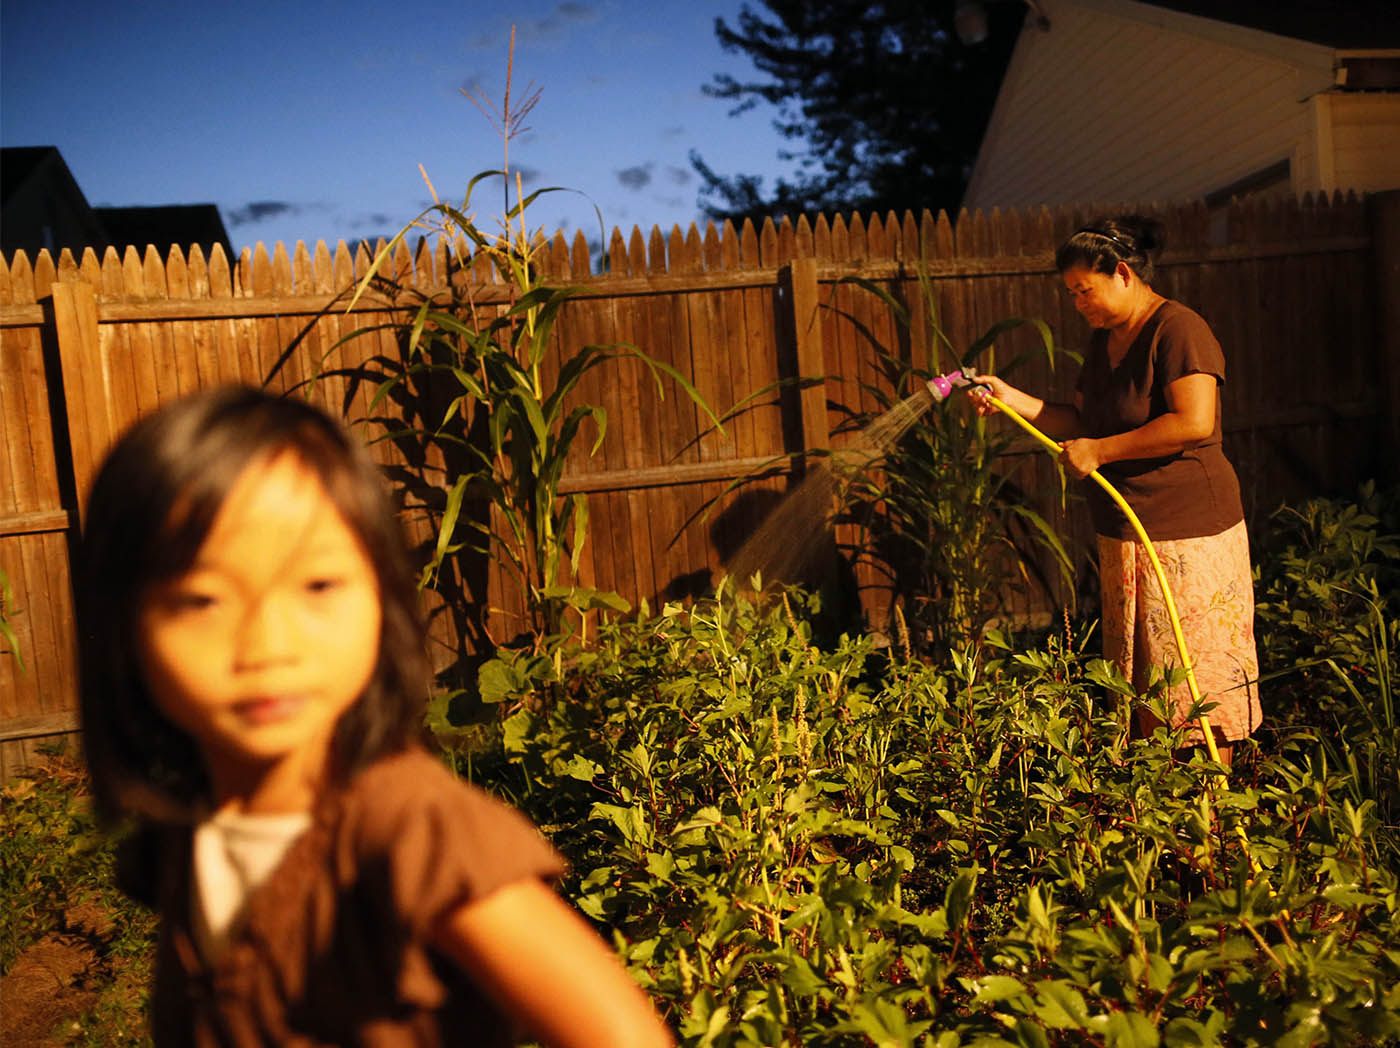 Htay Beh tends to her back yard garden as night falls, Wednesday, Aug. 12, 2015. Her daughter Paw Eh Ler Say, 4, left, plays in the driveway nearby. (Derek Gee/Buffalo News)